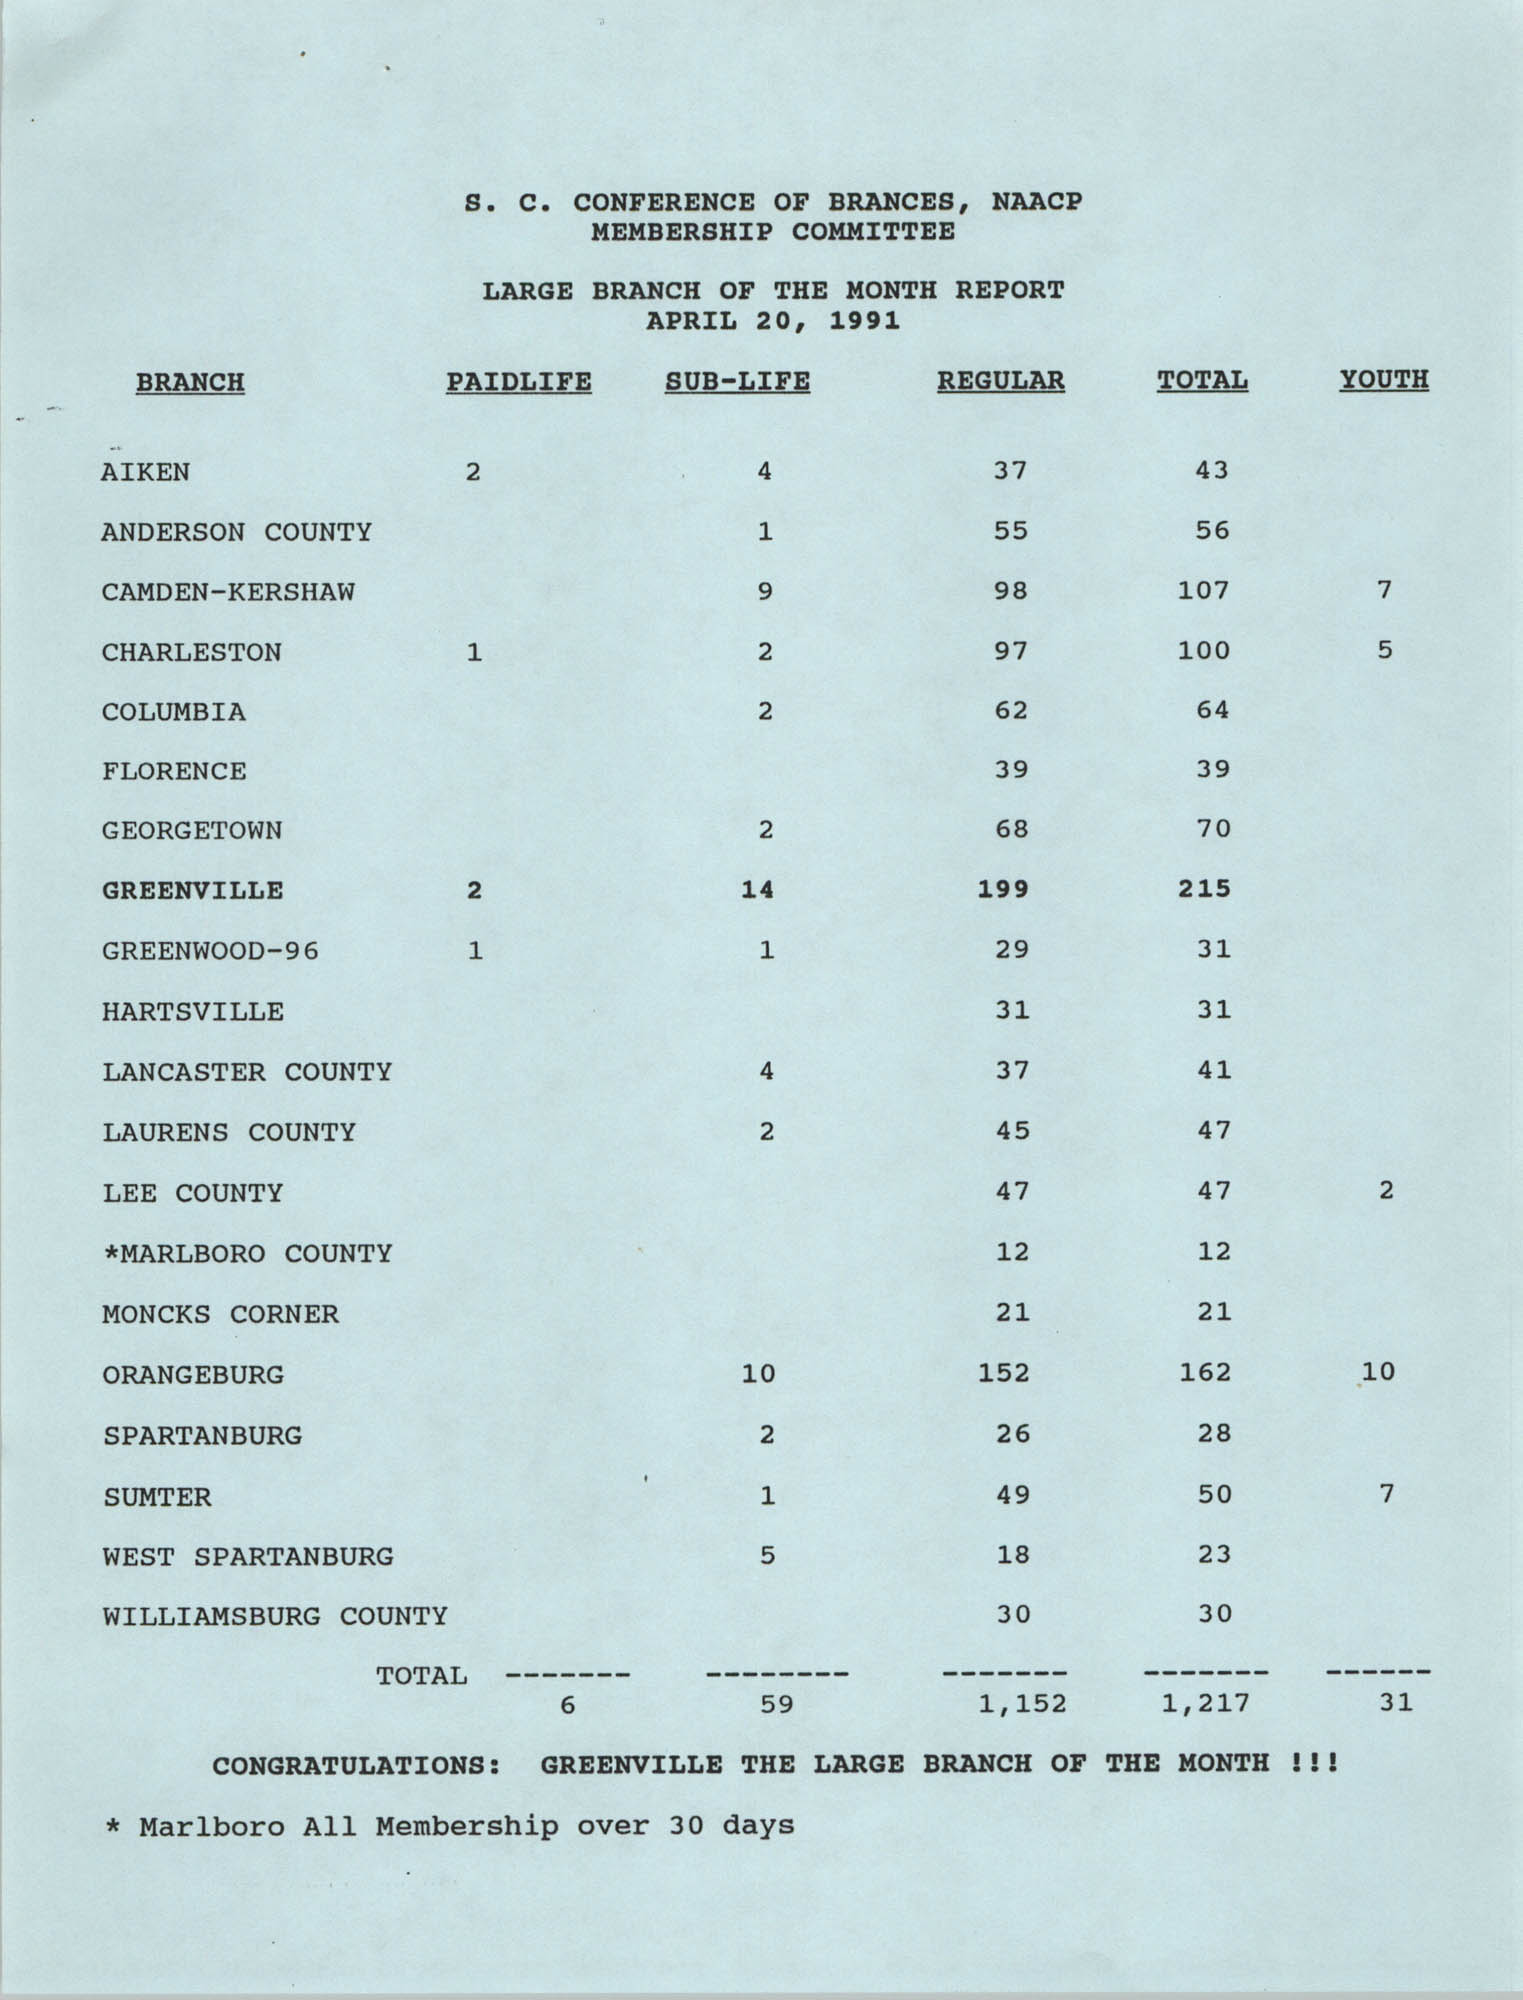 Large and Small Branch of the Month Reports, South Carolina Conference of Branches of the NAACP, April 20, 1991